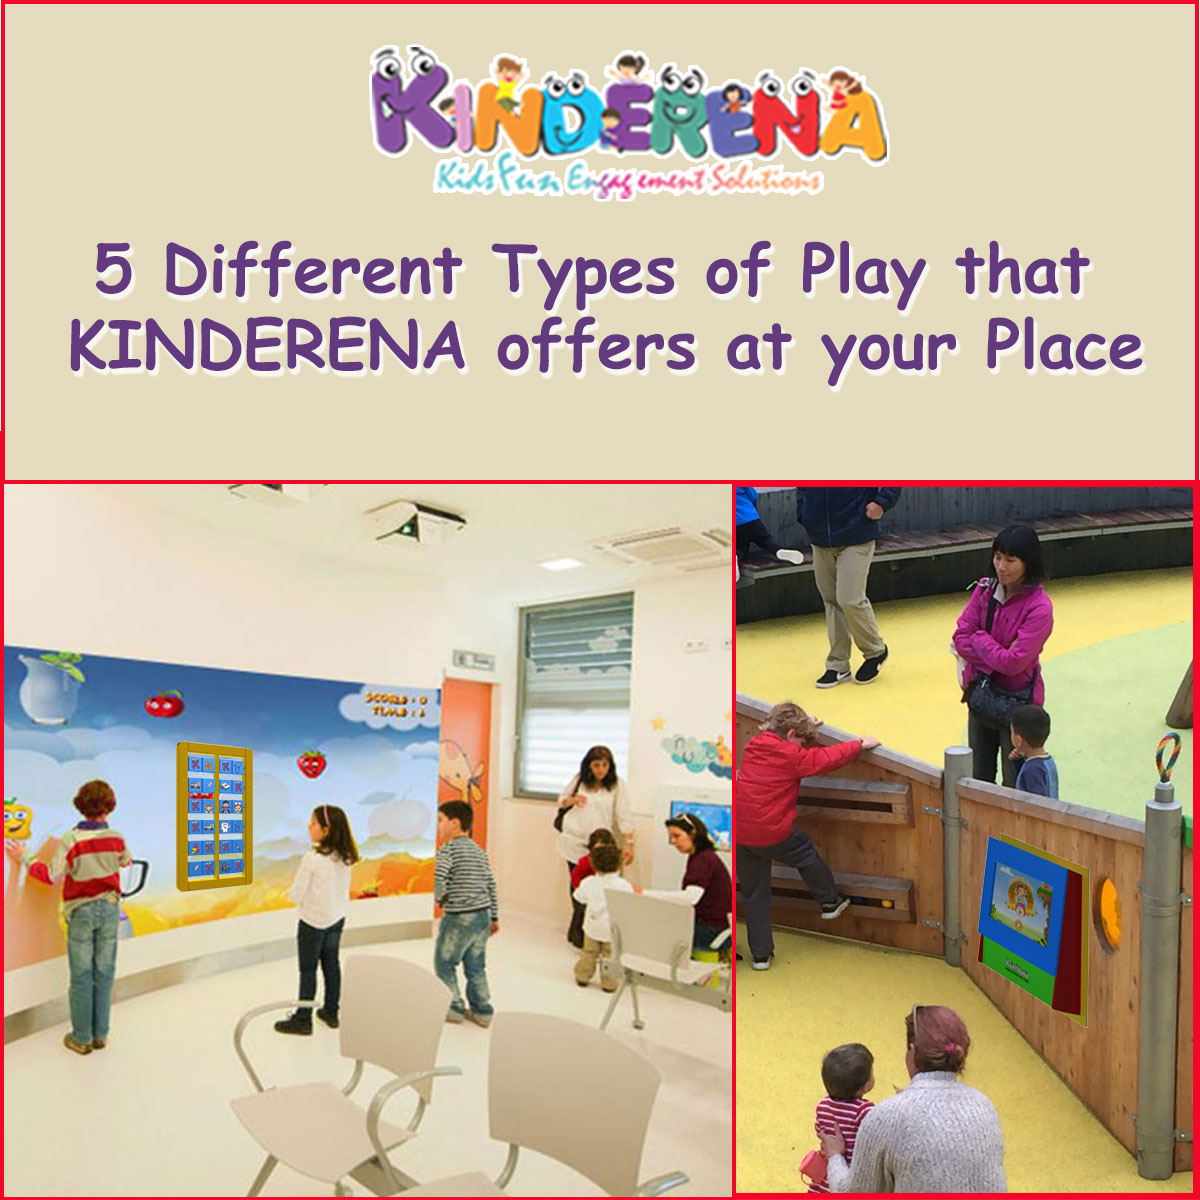 5 Different Types of Play that KINDERENA offers at your Place